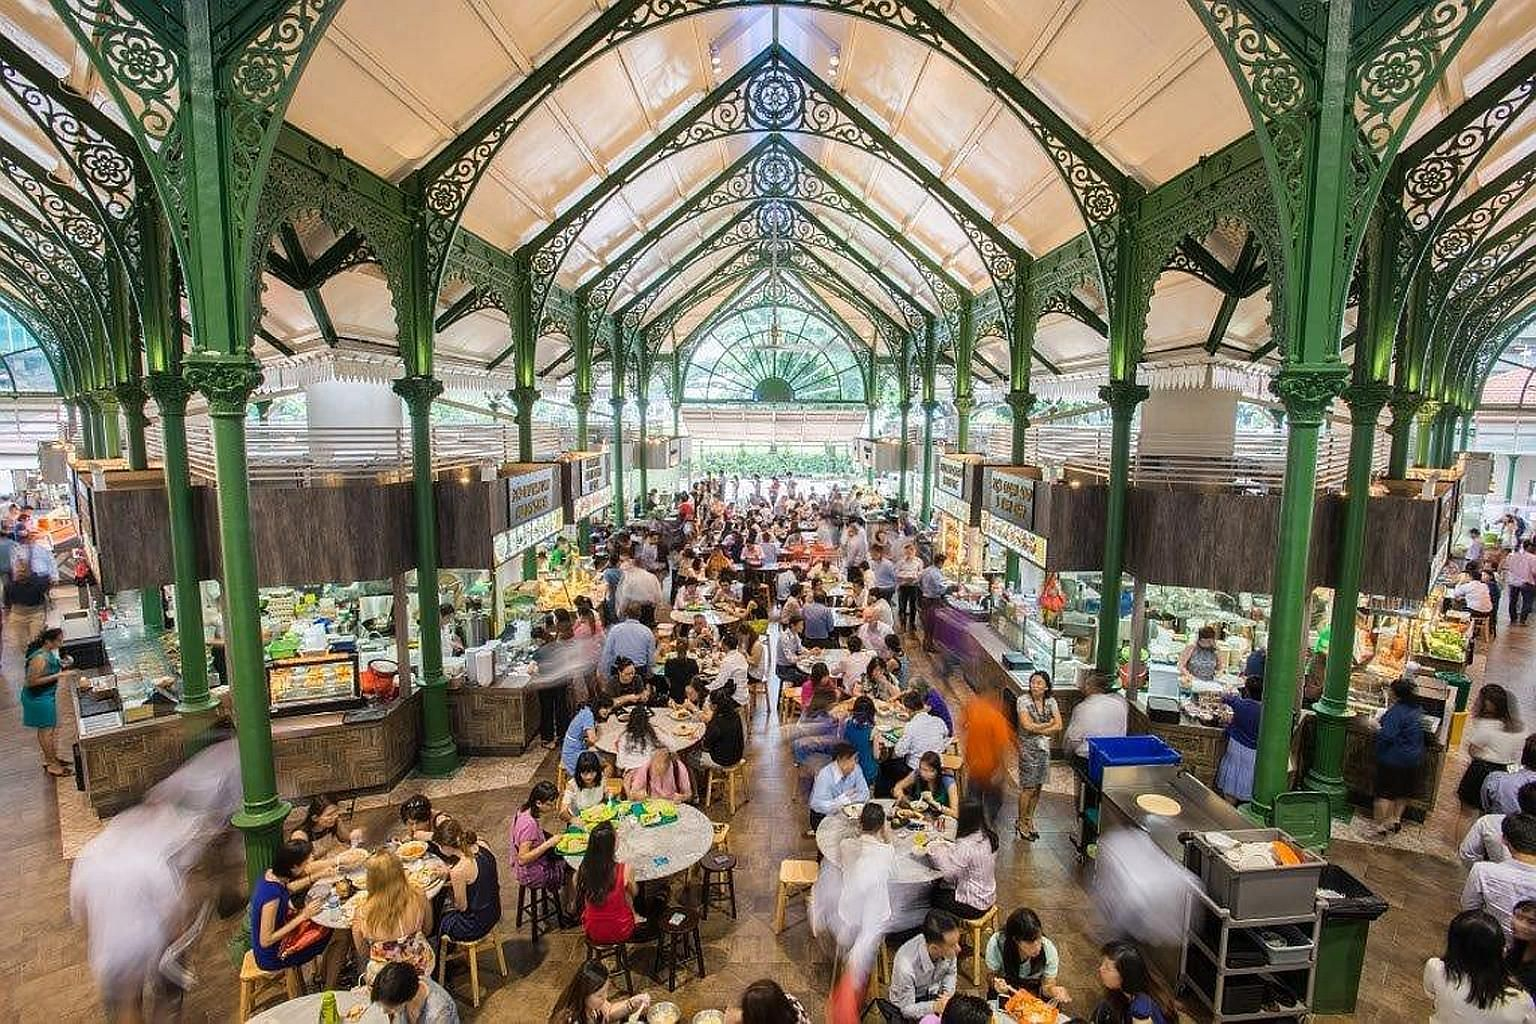 The majestic Lau Pa Sat is looking better and illustrates Kopitiam's strength - utilitarian spaces and strong curation of stalls. Crunch and chewiness in Thunder Tea Rice's version of this Hakka dish.